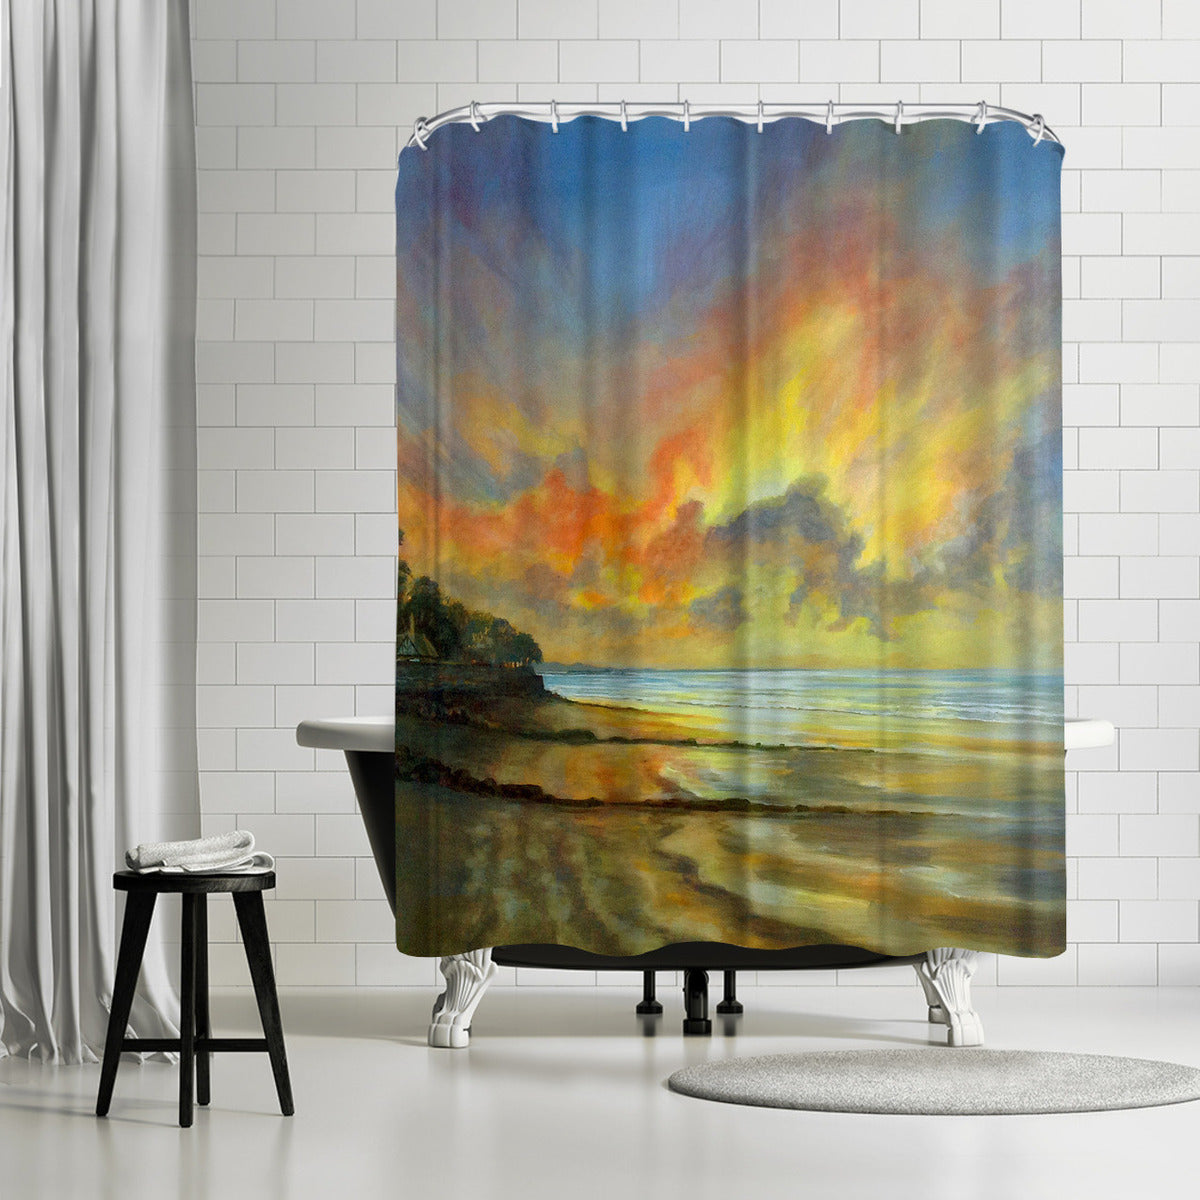 Sunset by Sandra Francis Shower Curtain - Shower Curtain - Americanflat